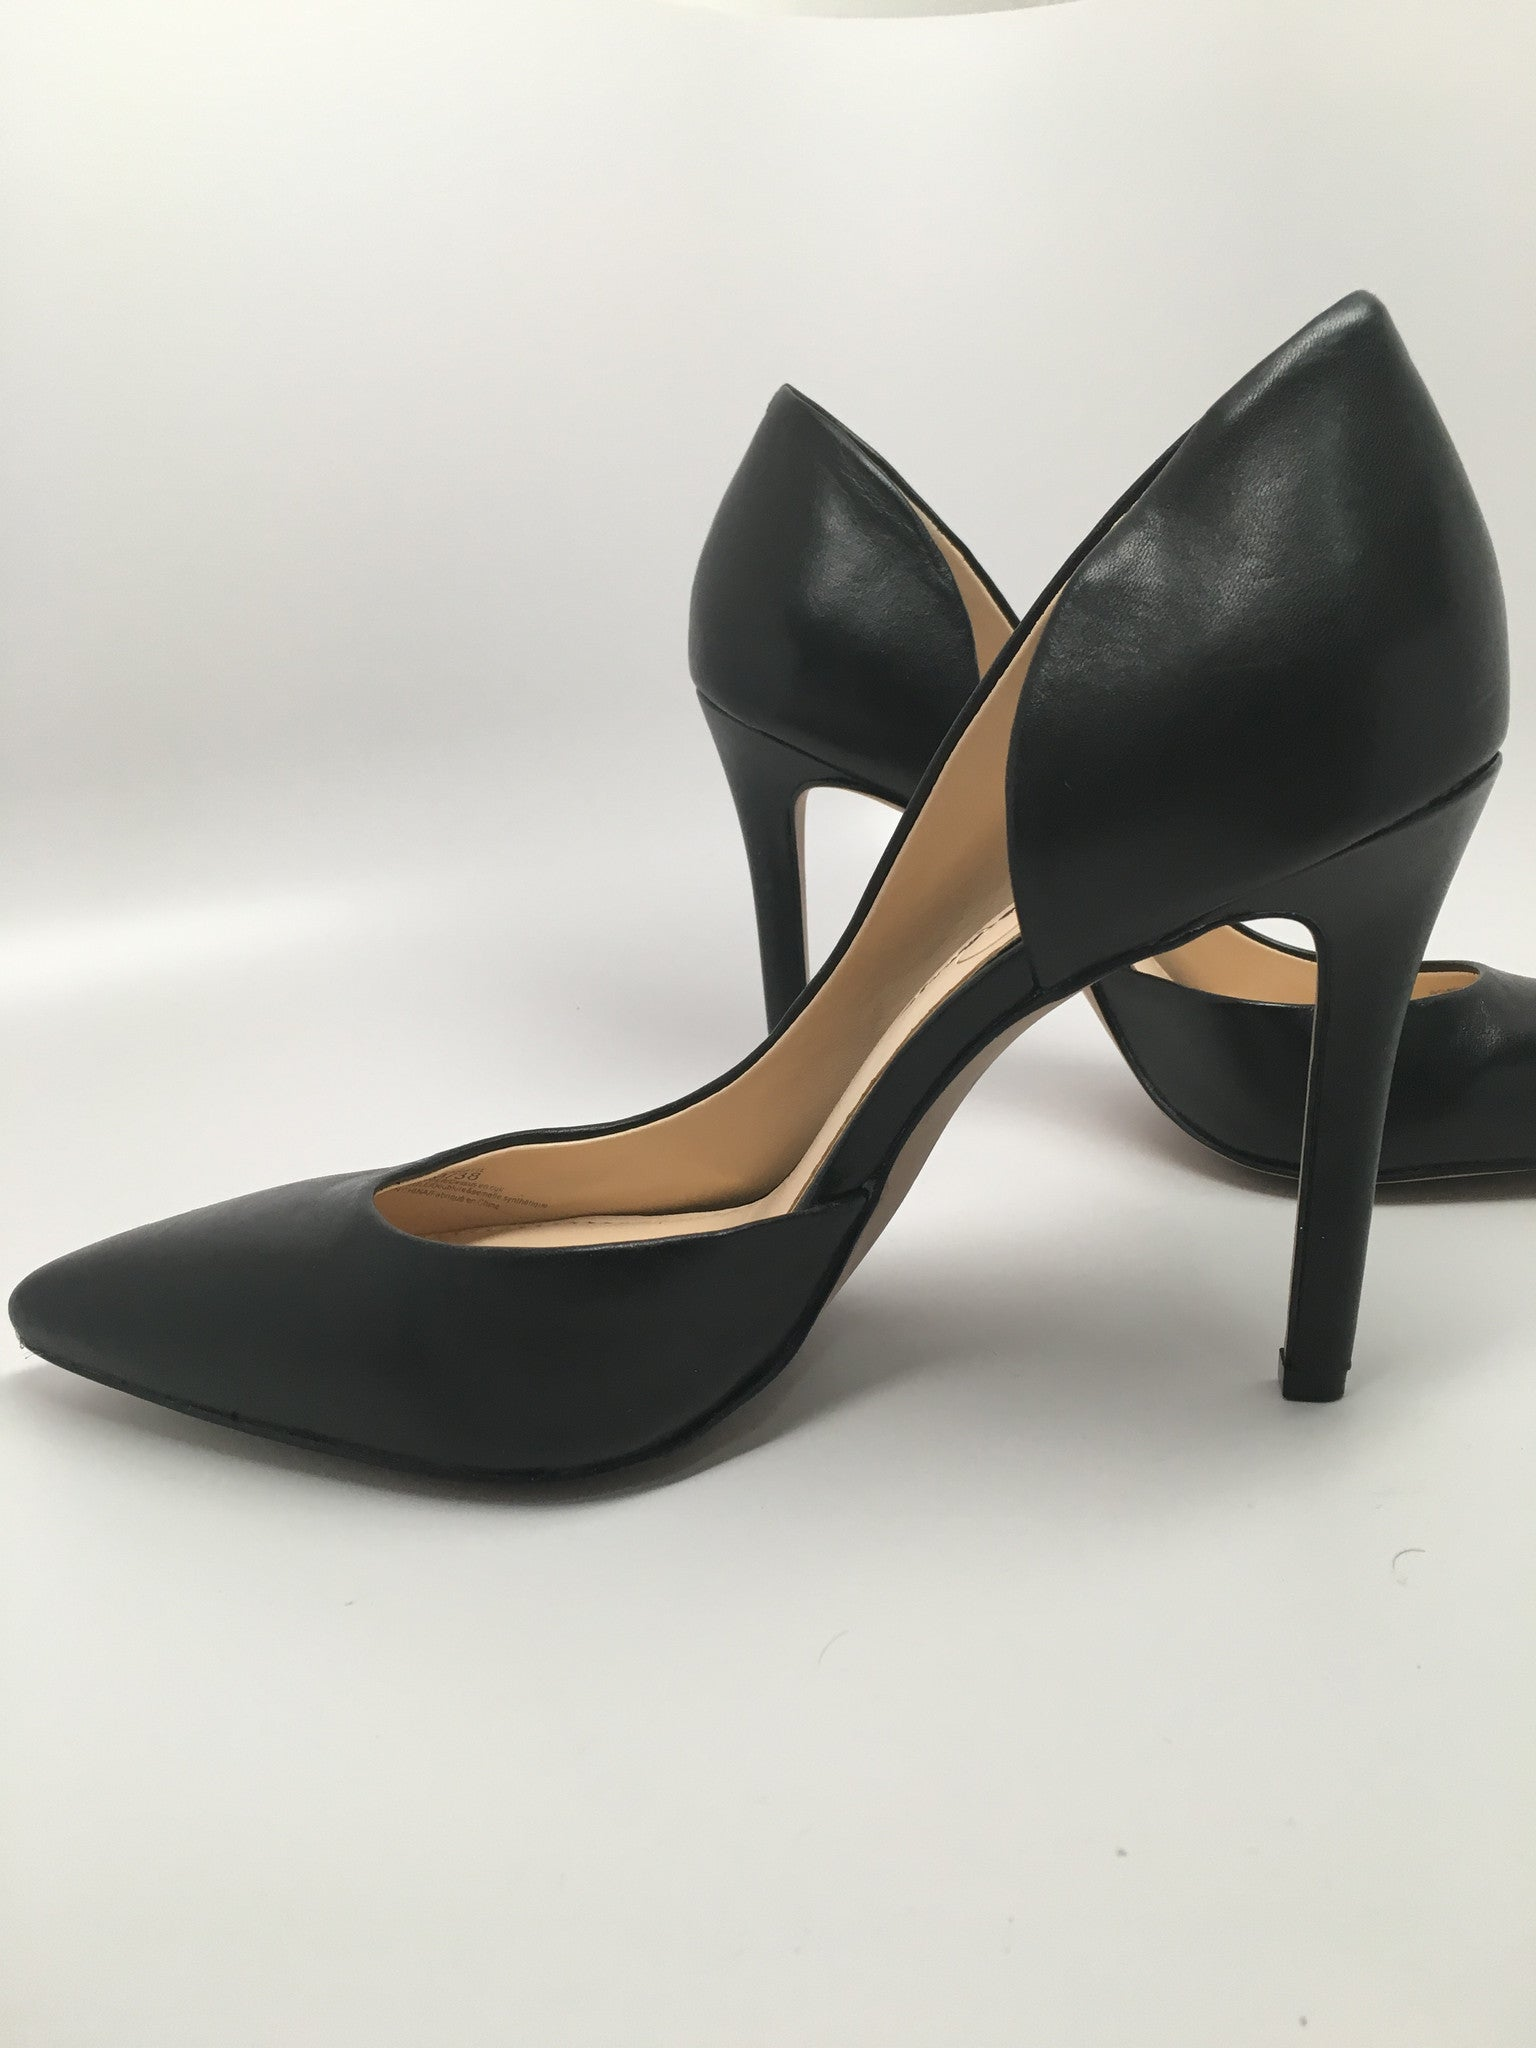 NEW JESSICA SIMPSON CLAUDETTE HALF D'ORSAY LEATHER PUMP - SIZE 8 US